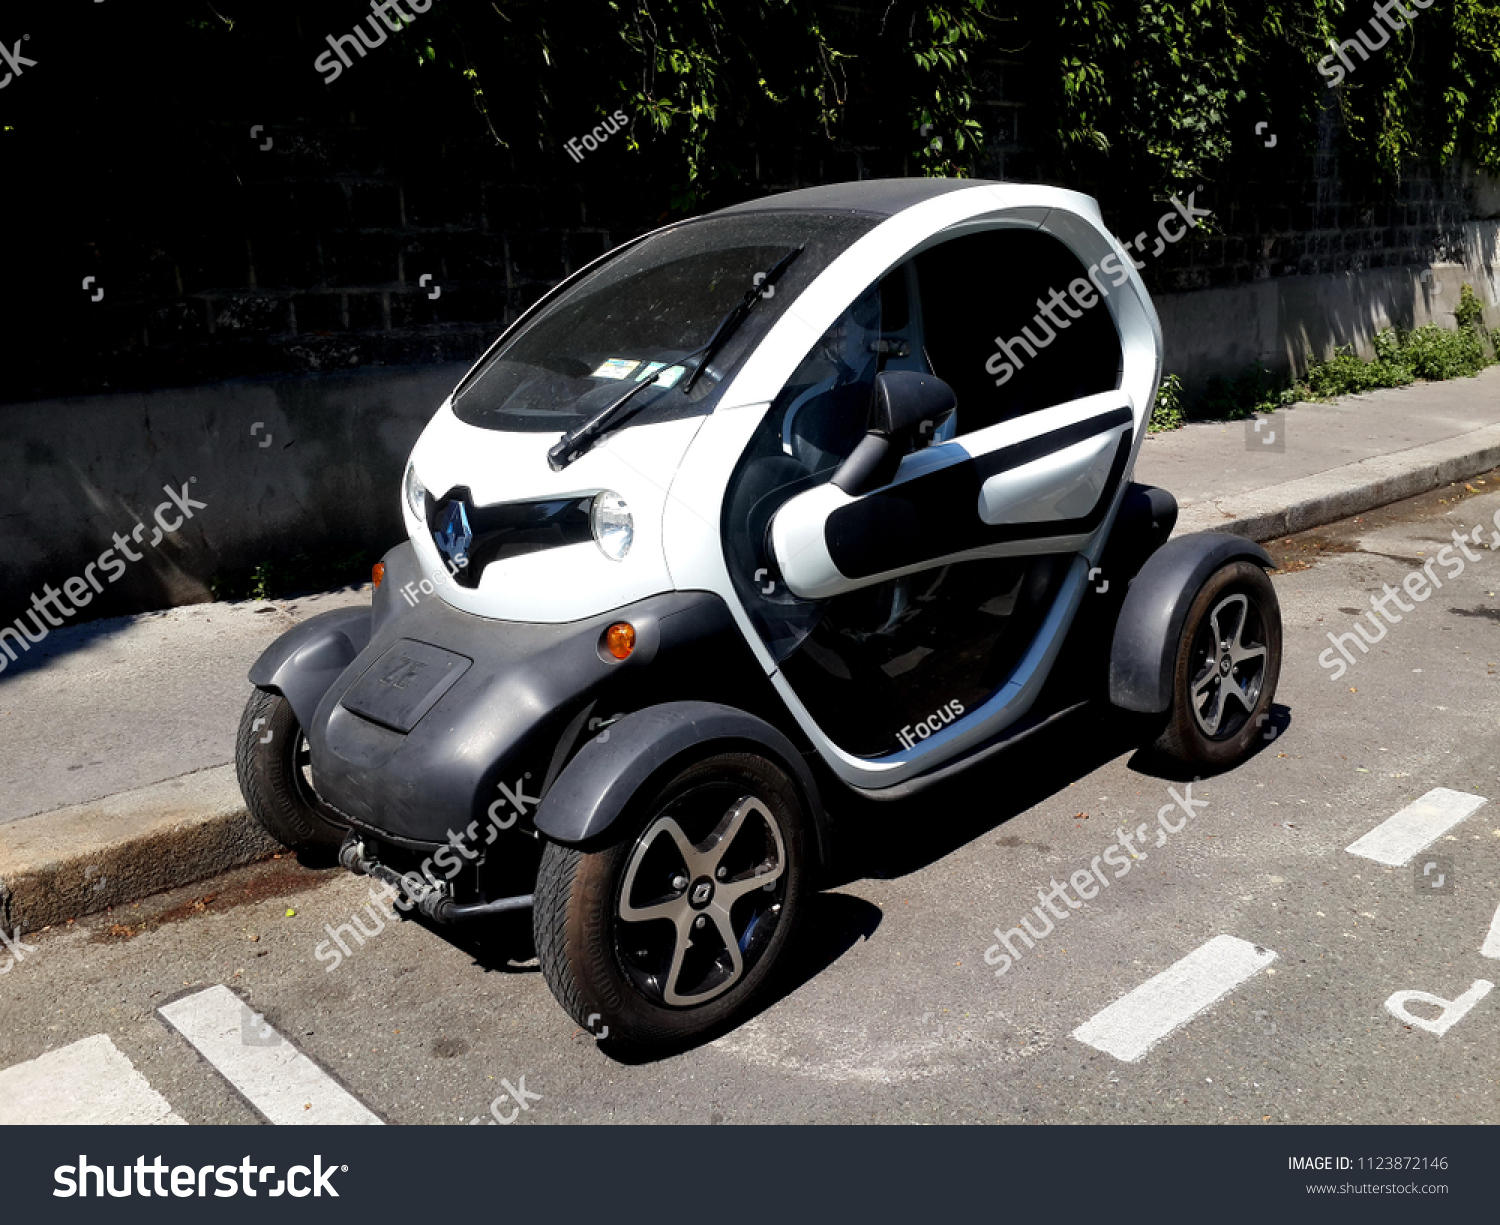 PARIS, FRANCE - JUNE 30, 2018: An all-electric car Renault Z.E. - that stands for Zero Emission- is parked on a street on June 30, 2018 in Paris, France.